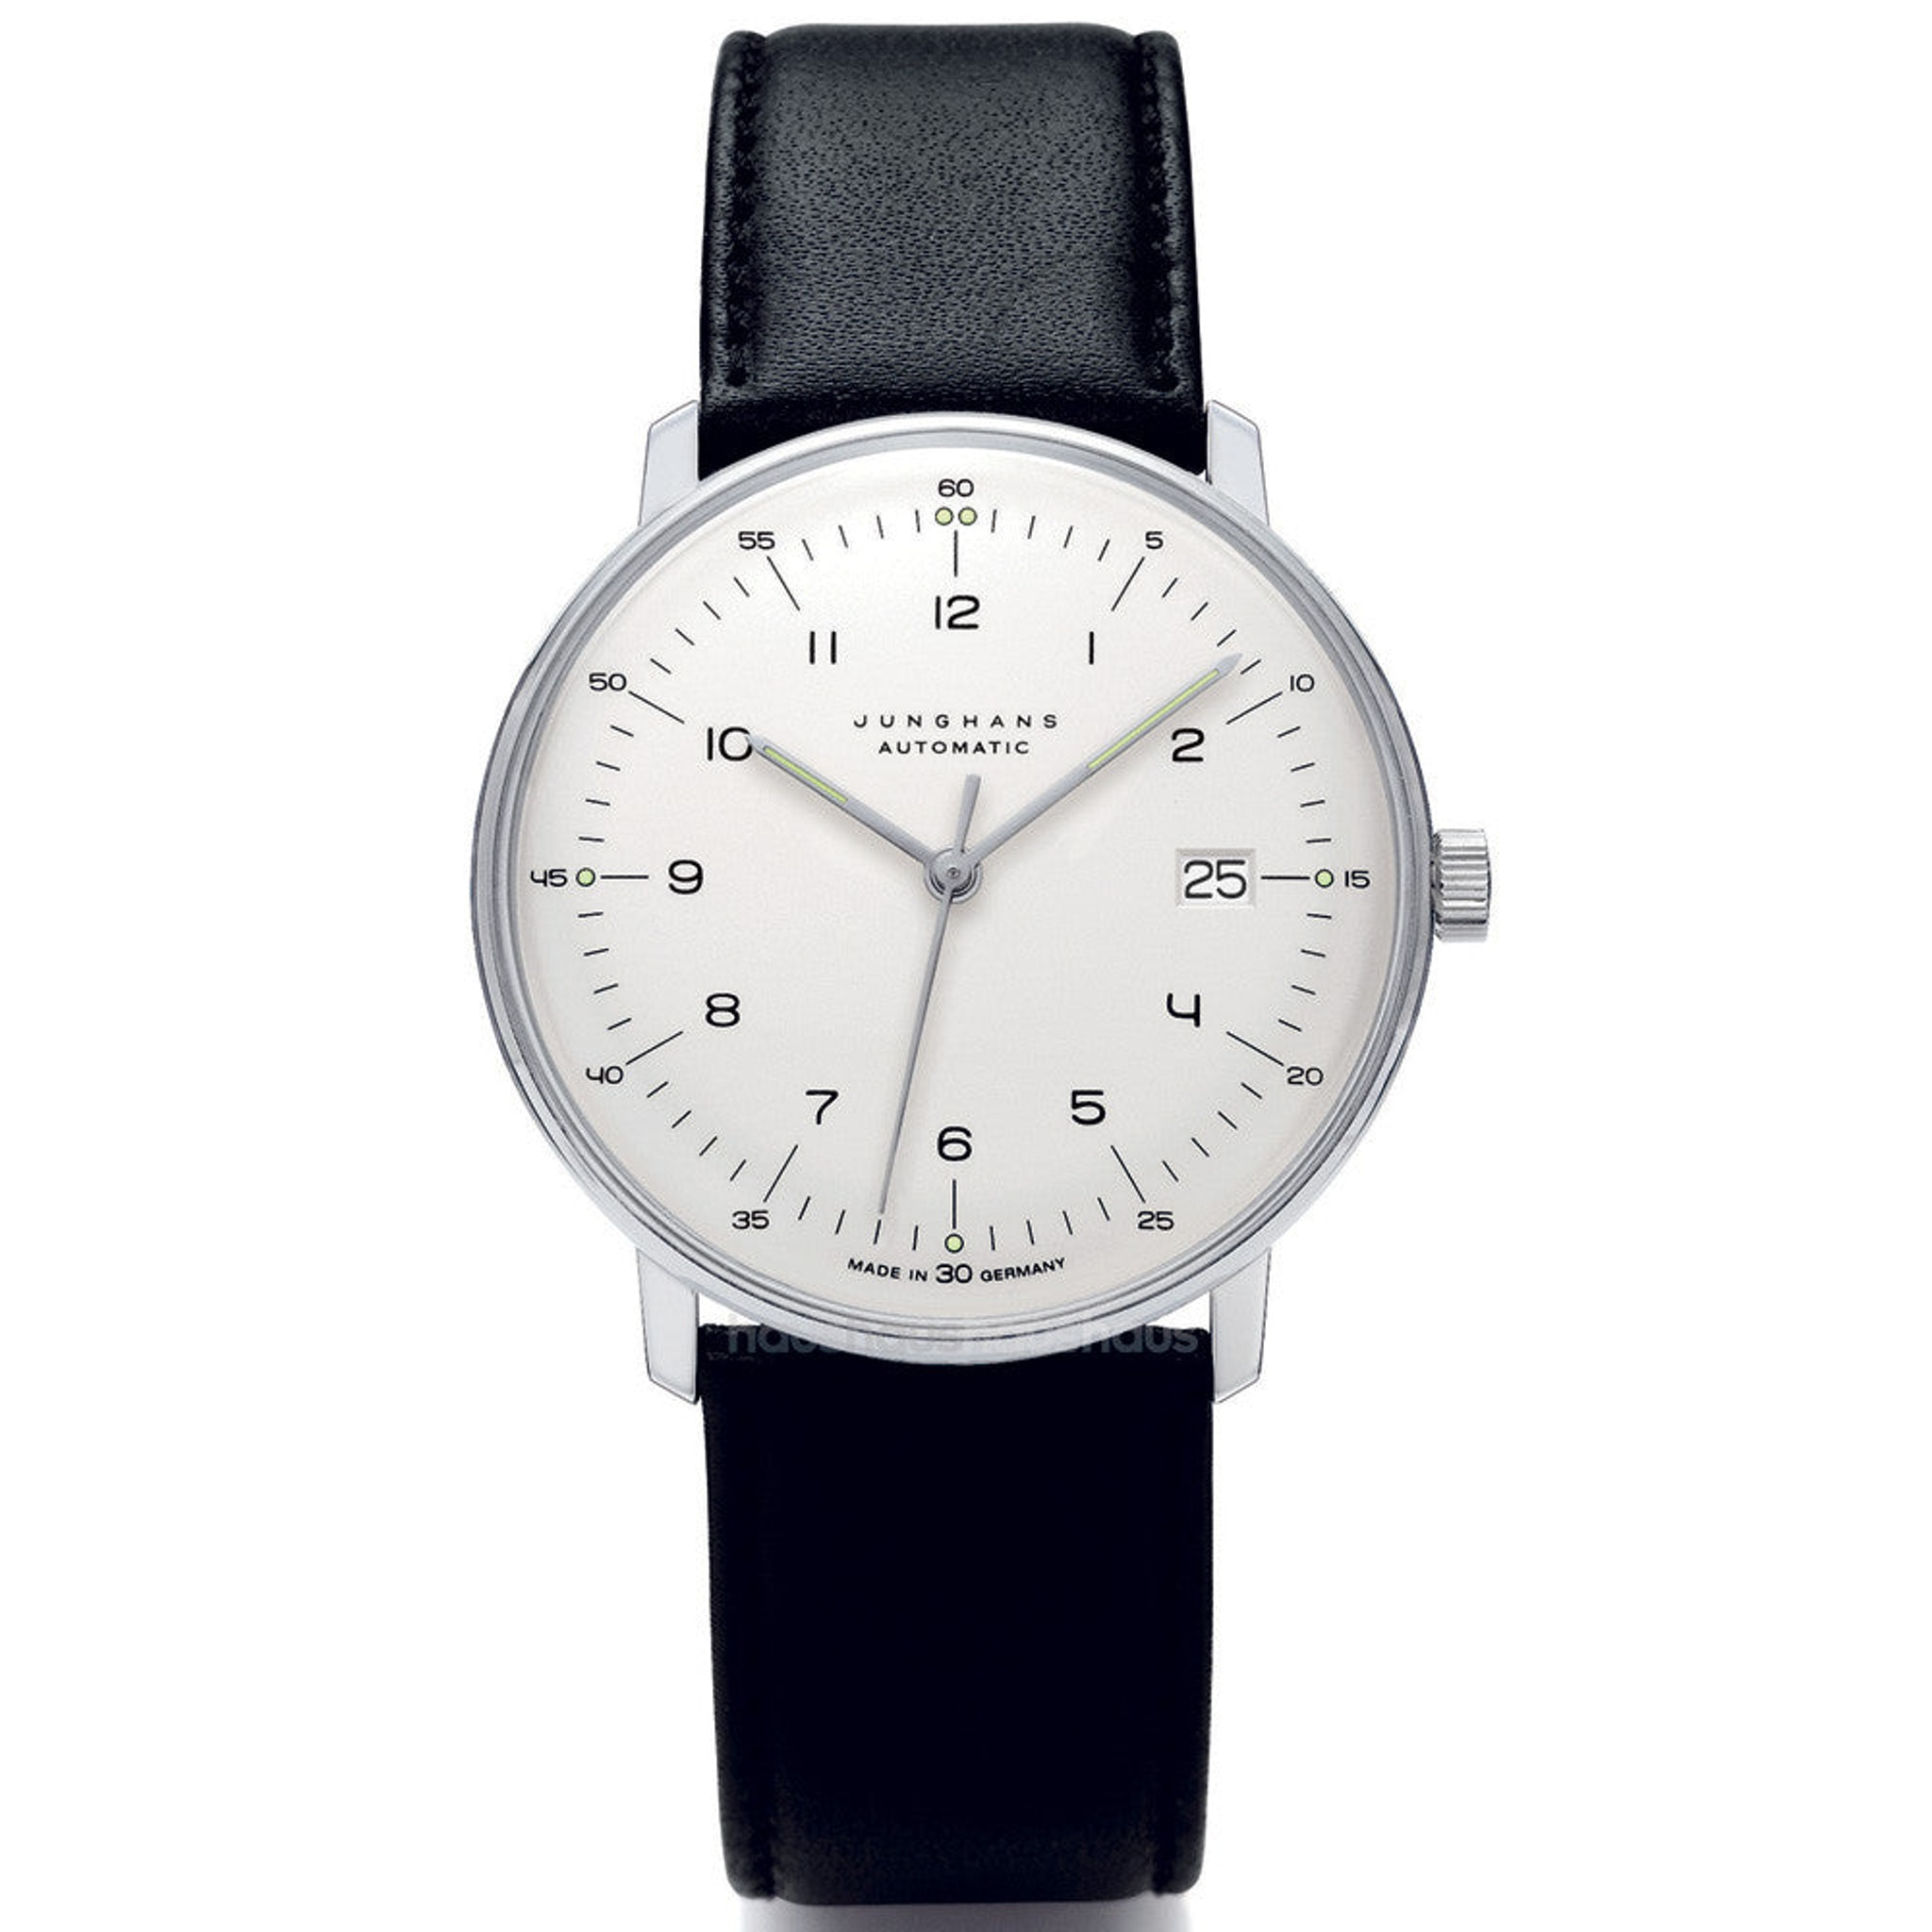 Max Bill 027/4700.00 Automatic watch by Junghans